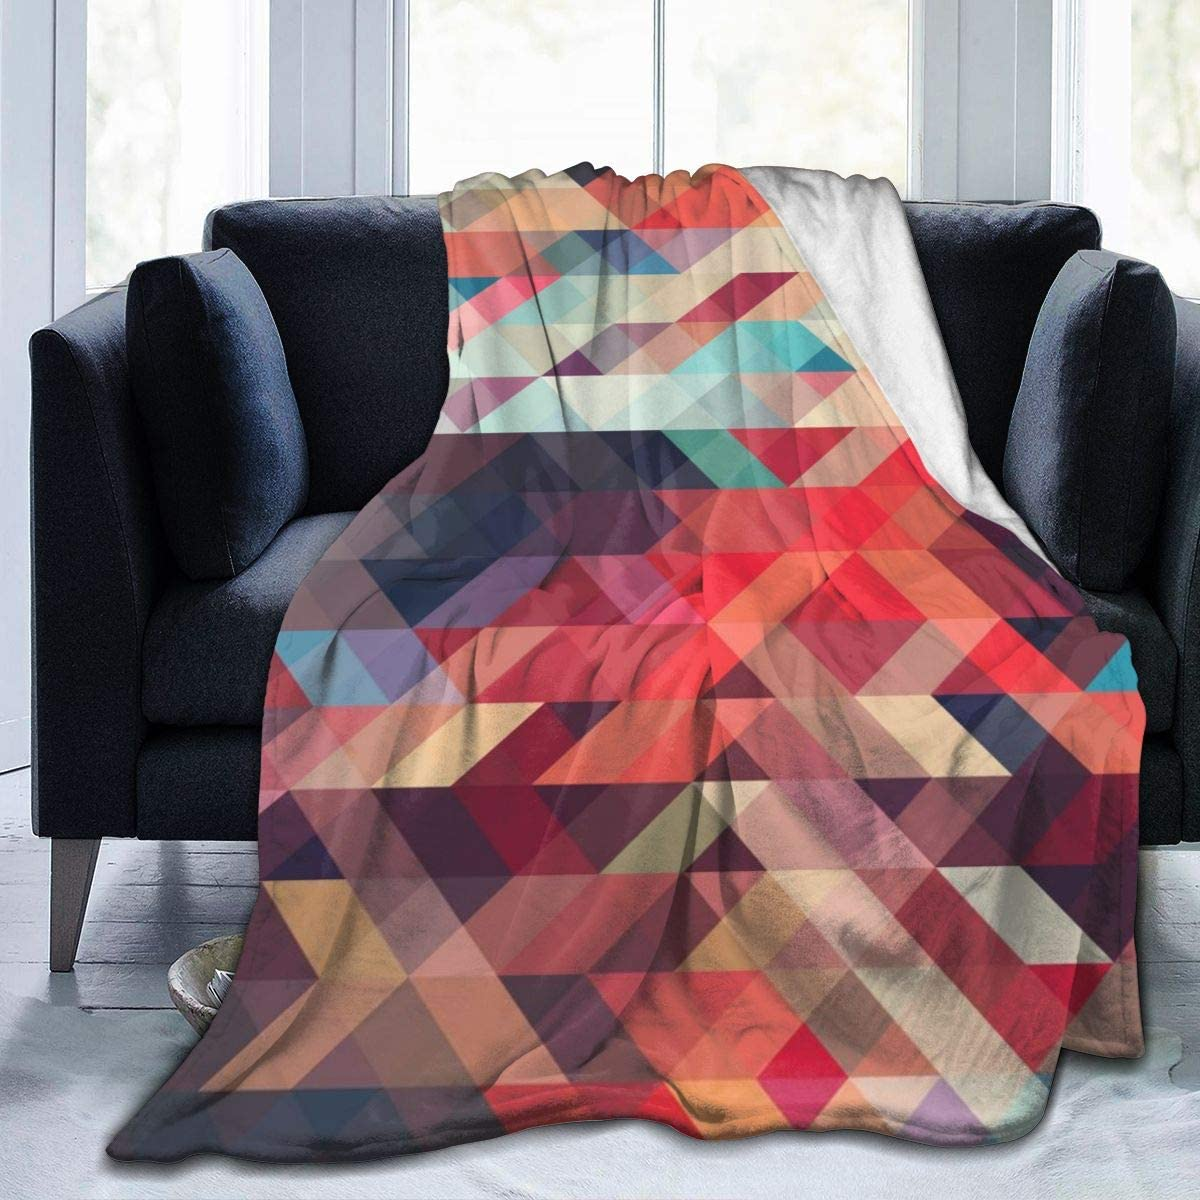 Amazon Com Familygam Blankets Queen Size Abstract Triangle Pattern Texture Background 60x50 Inch Bed Blanket And Throws Home Kitchen